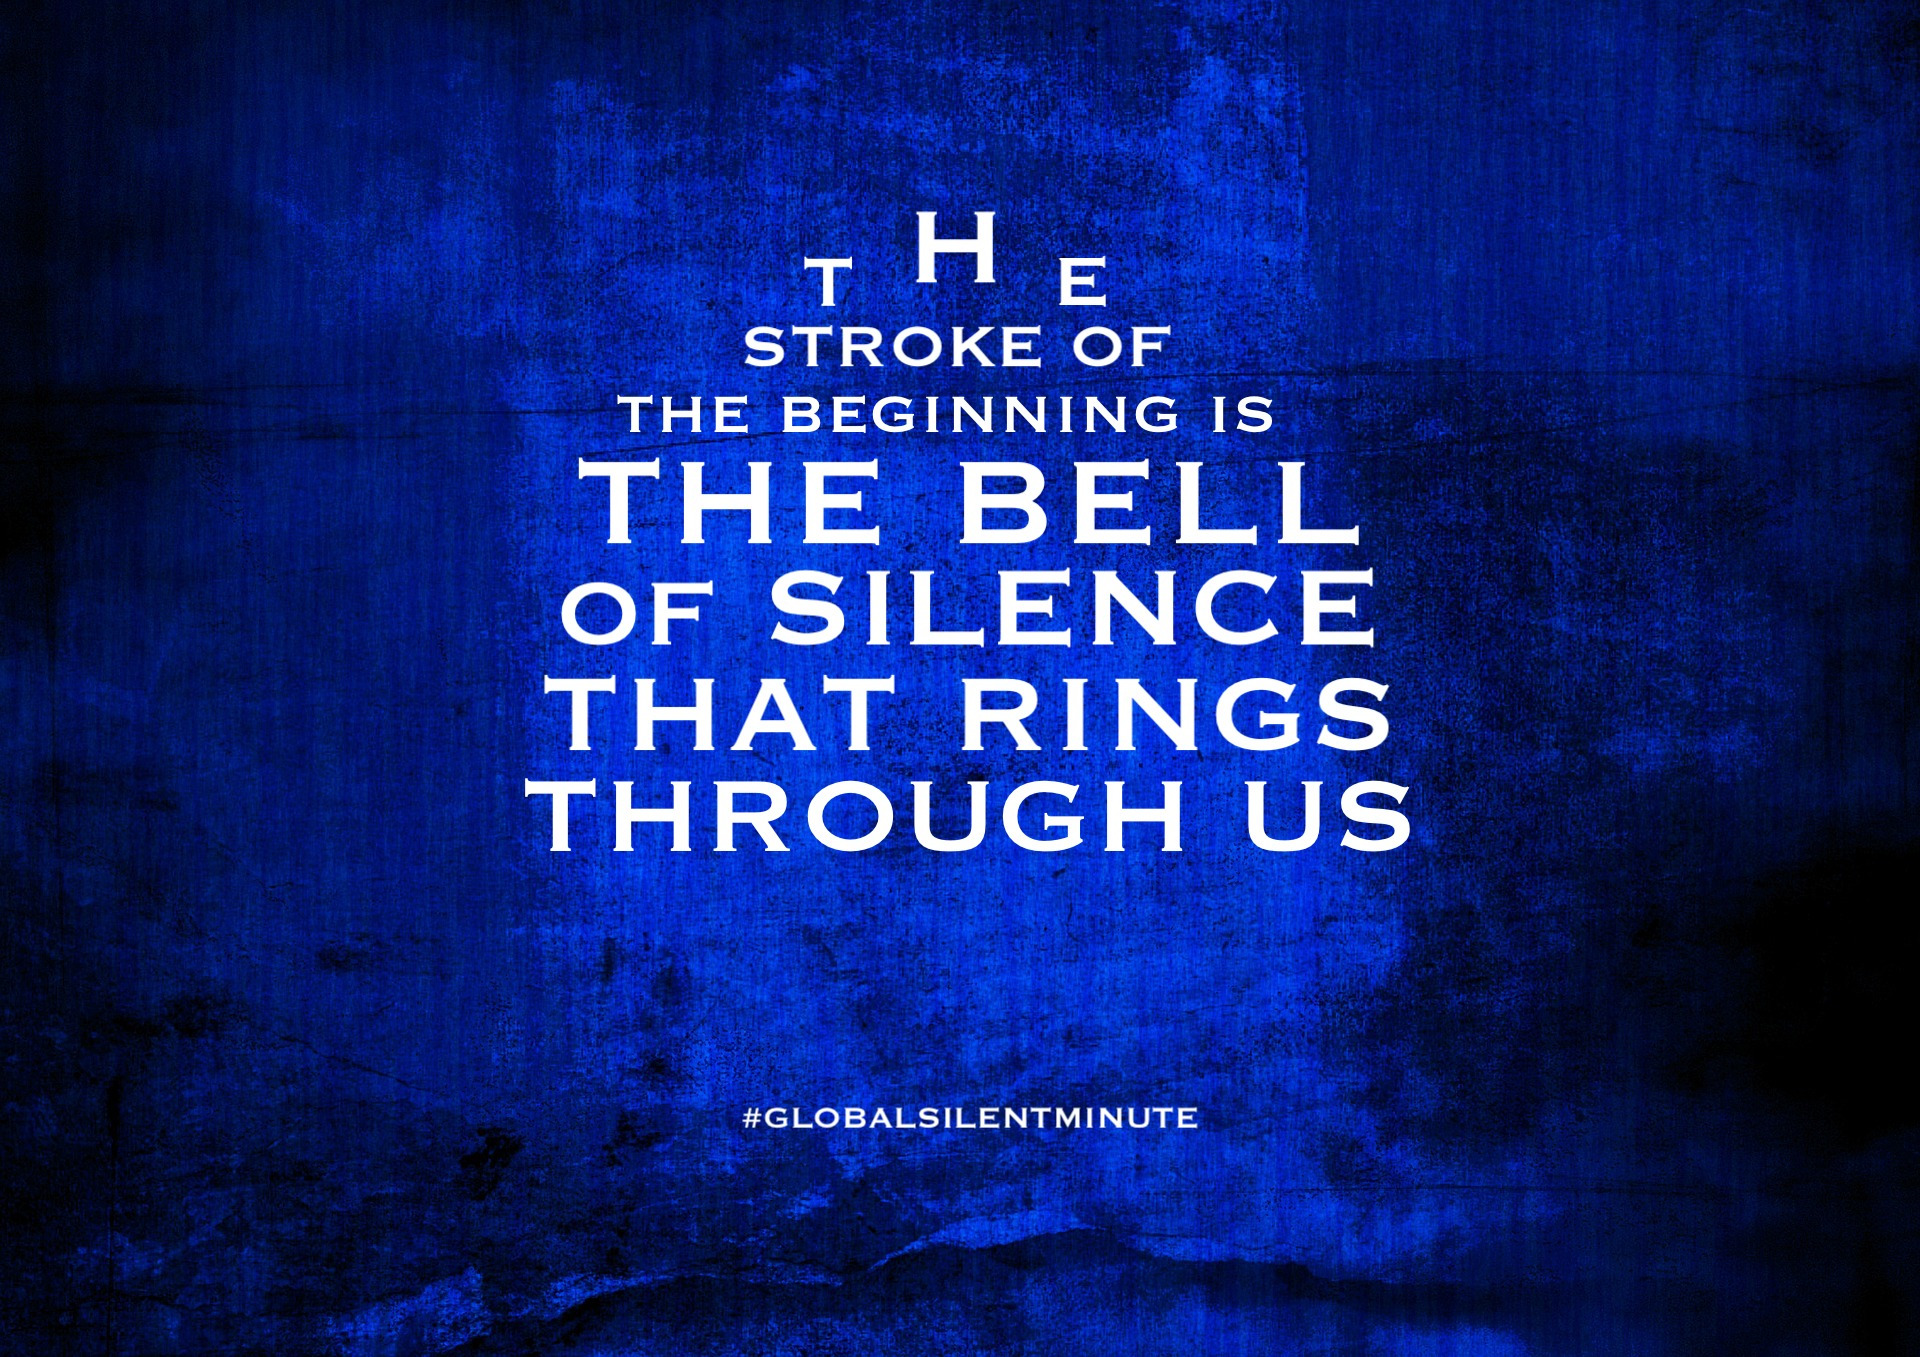 2.The stroke of the beginning is the bell of Silence that rings through us